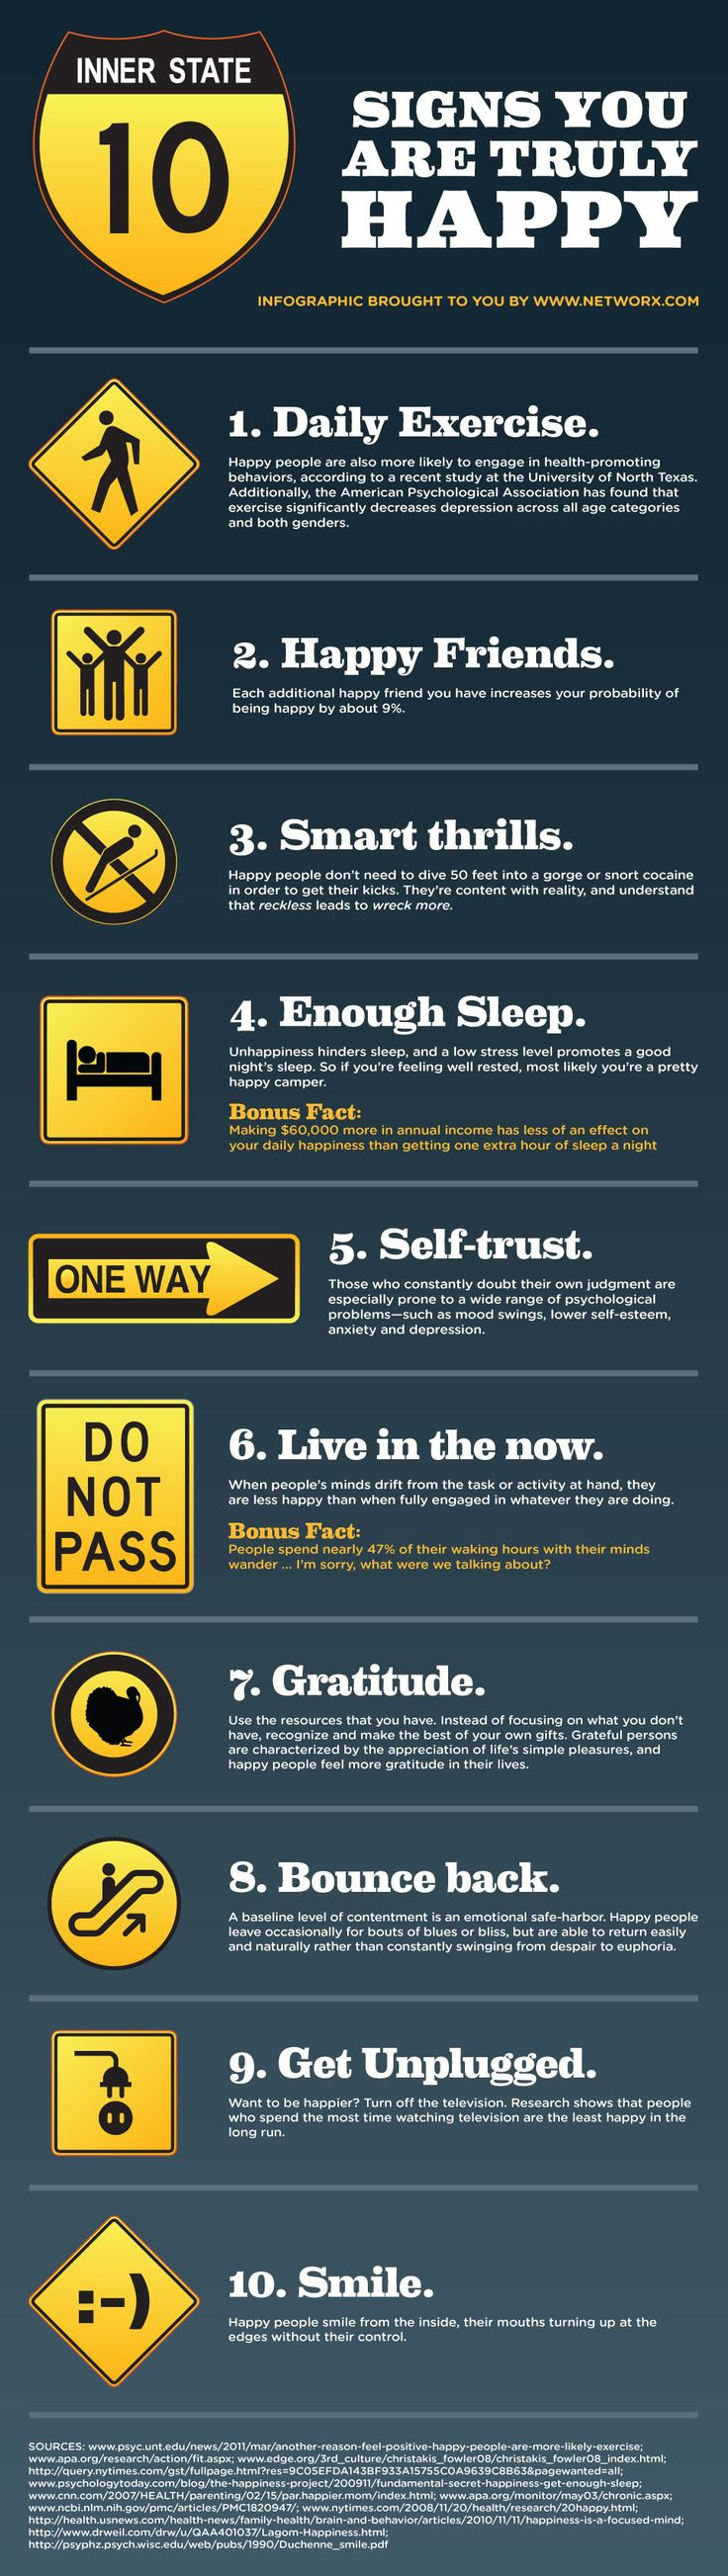 Not everyone can be truly happy all the times, that's life, but there may be some moments in your life where you feel really happy, where inside you feel really content with yourself and with the world around you. Networx has put together a simple infographic which states 10 clues that may mean you're truly…